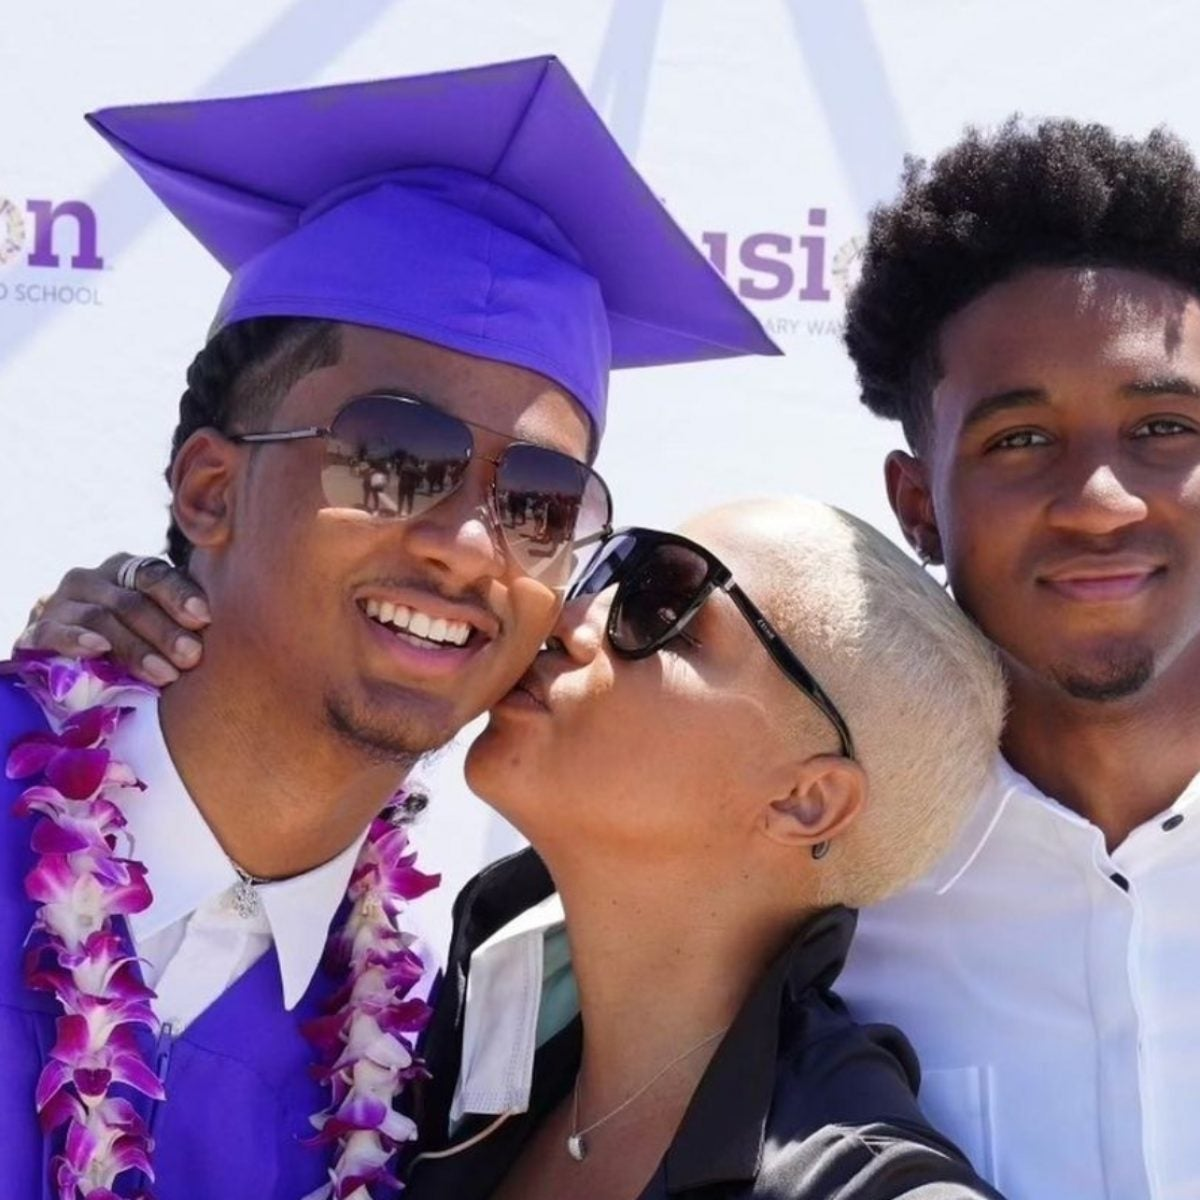 Toni Braxton's Son Diezel Is Headed To Howard University And We Feel Old